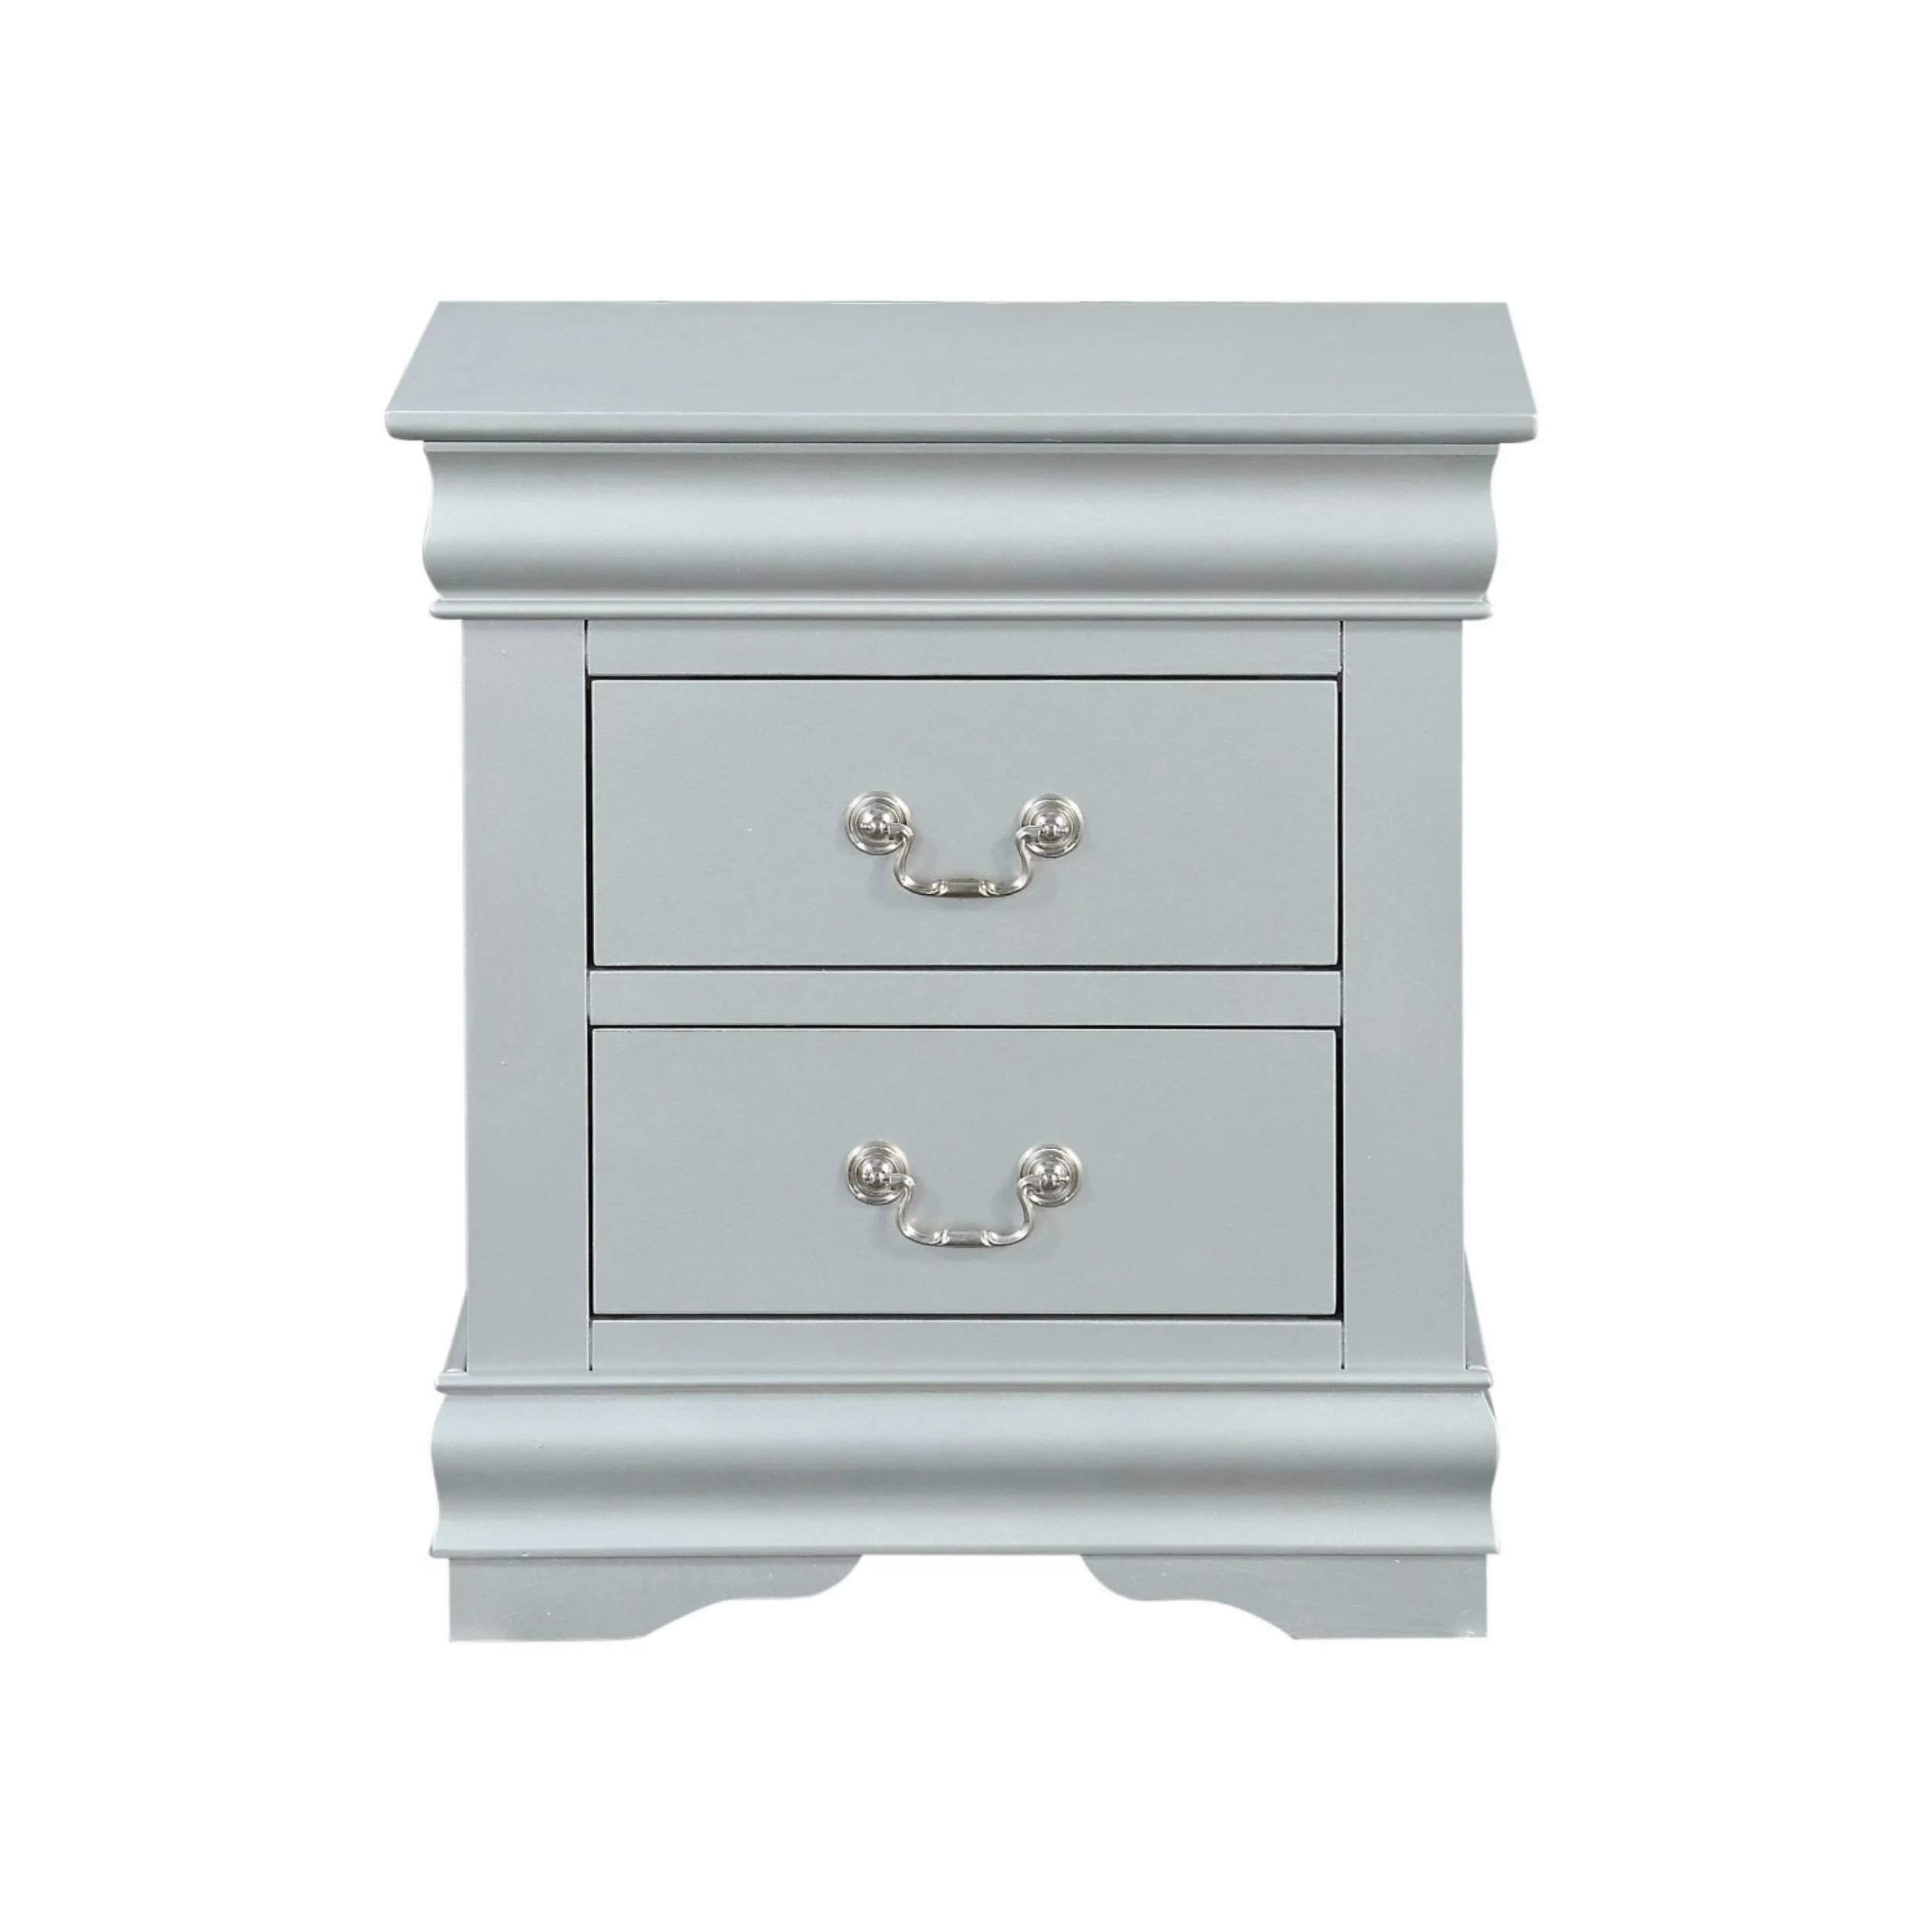 Traditional Style Wooden Nightstand With Two Drawers And Bracket Base Grey